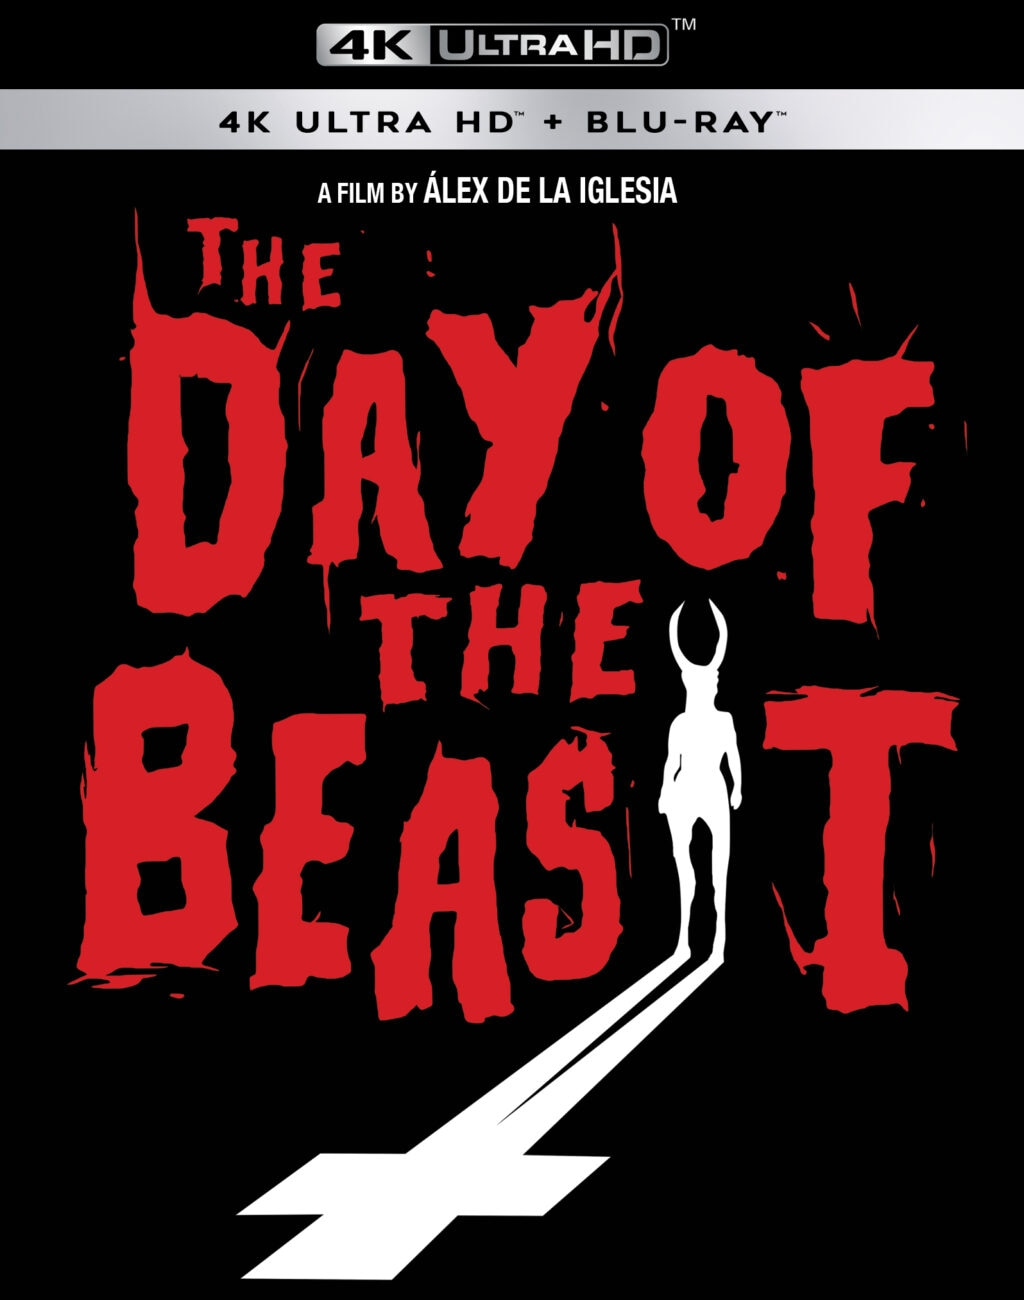 day of the beast 4k 1024x1300 - THE DAY OF THE BEAST 4K Review - Severin Delivers Unholy Humor in Ultra HD